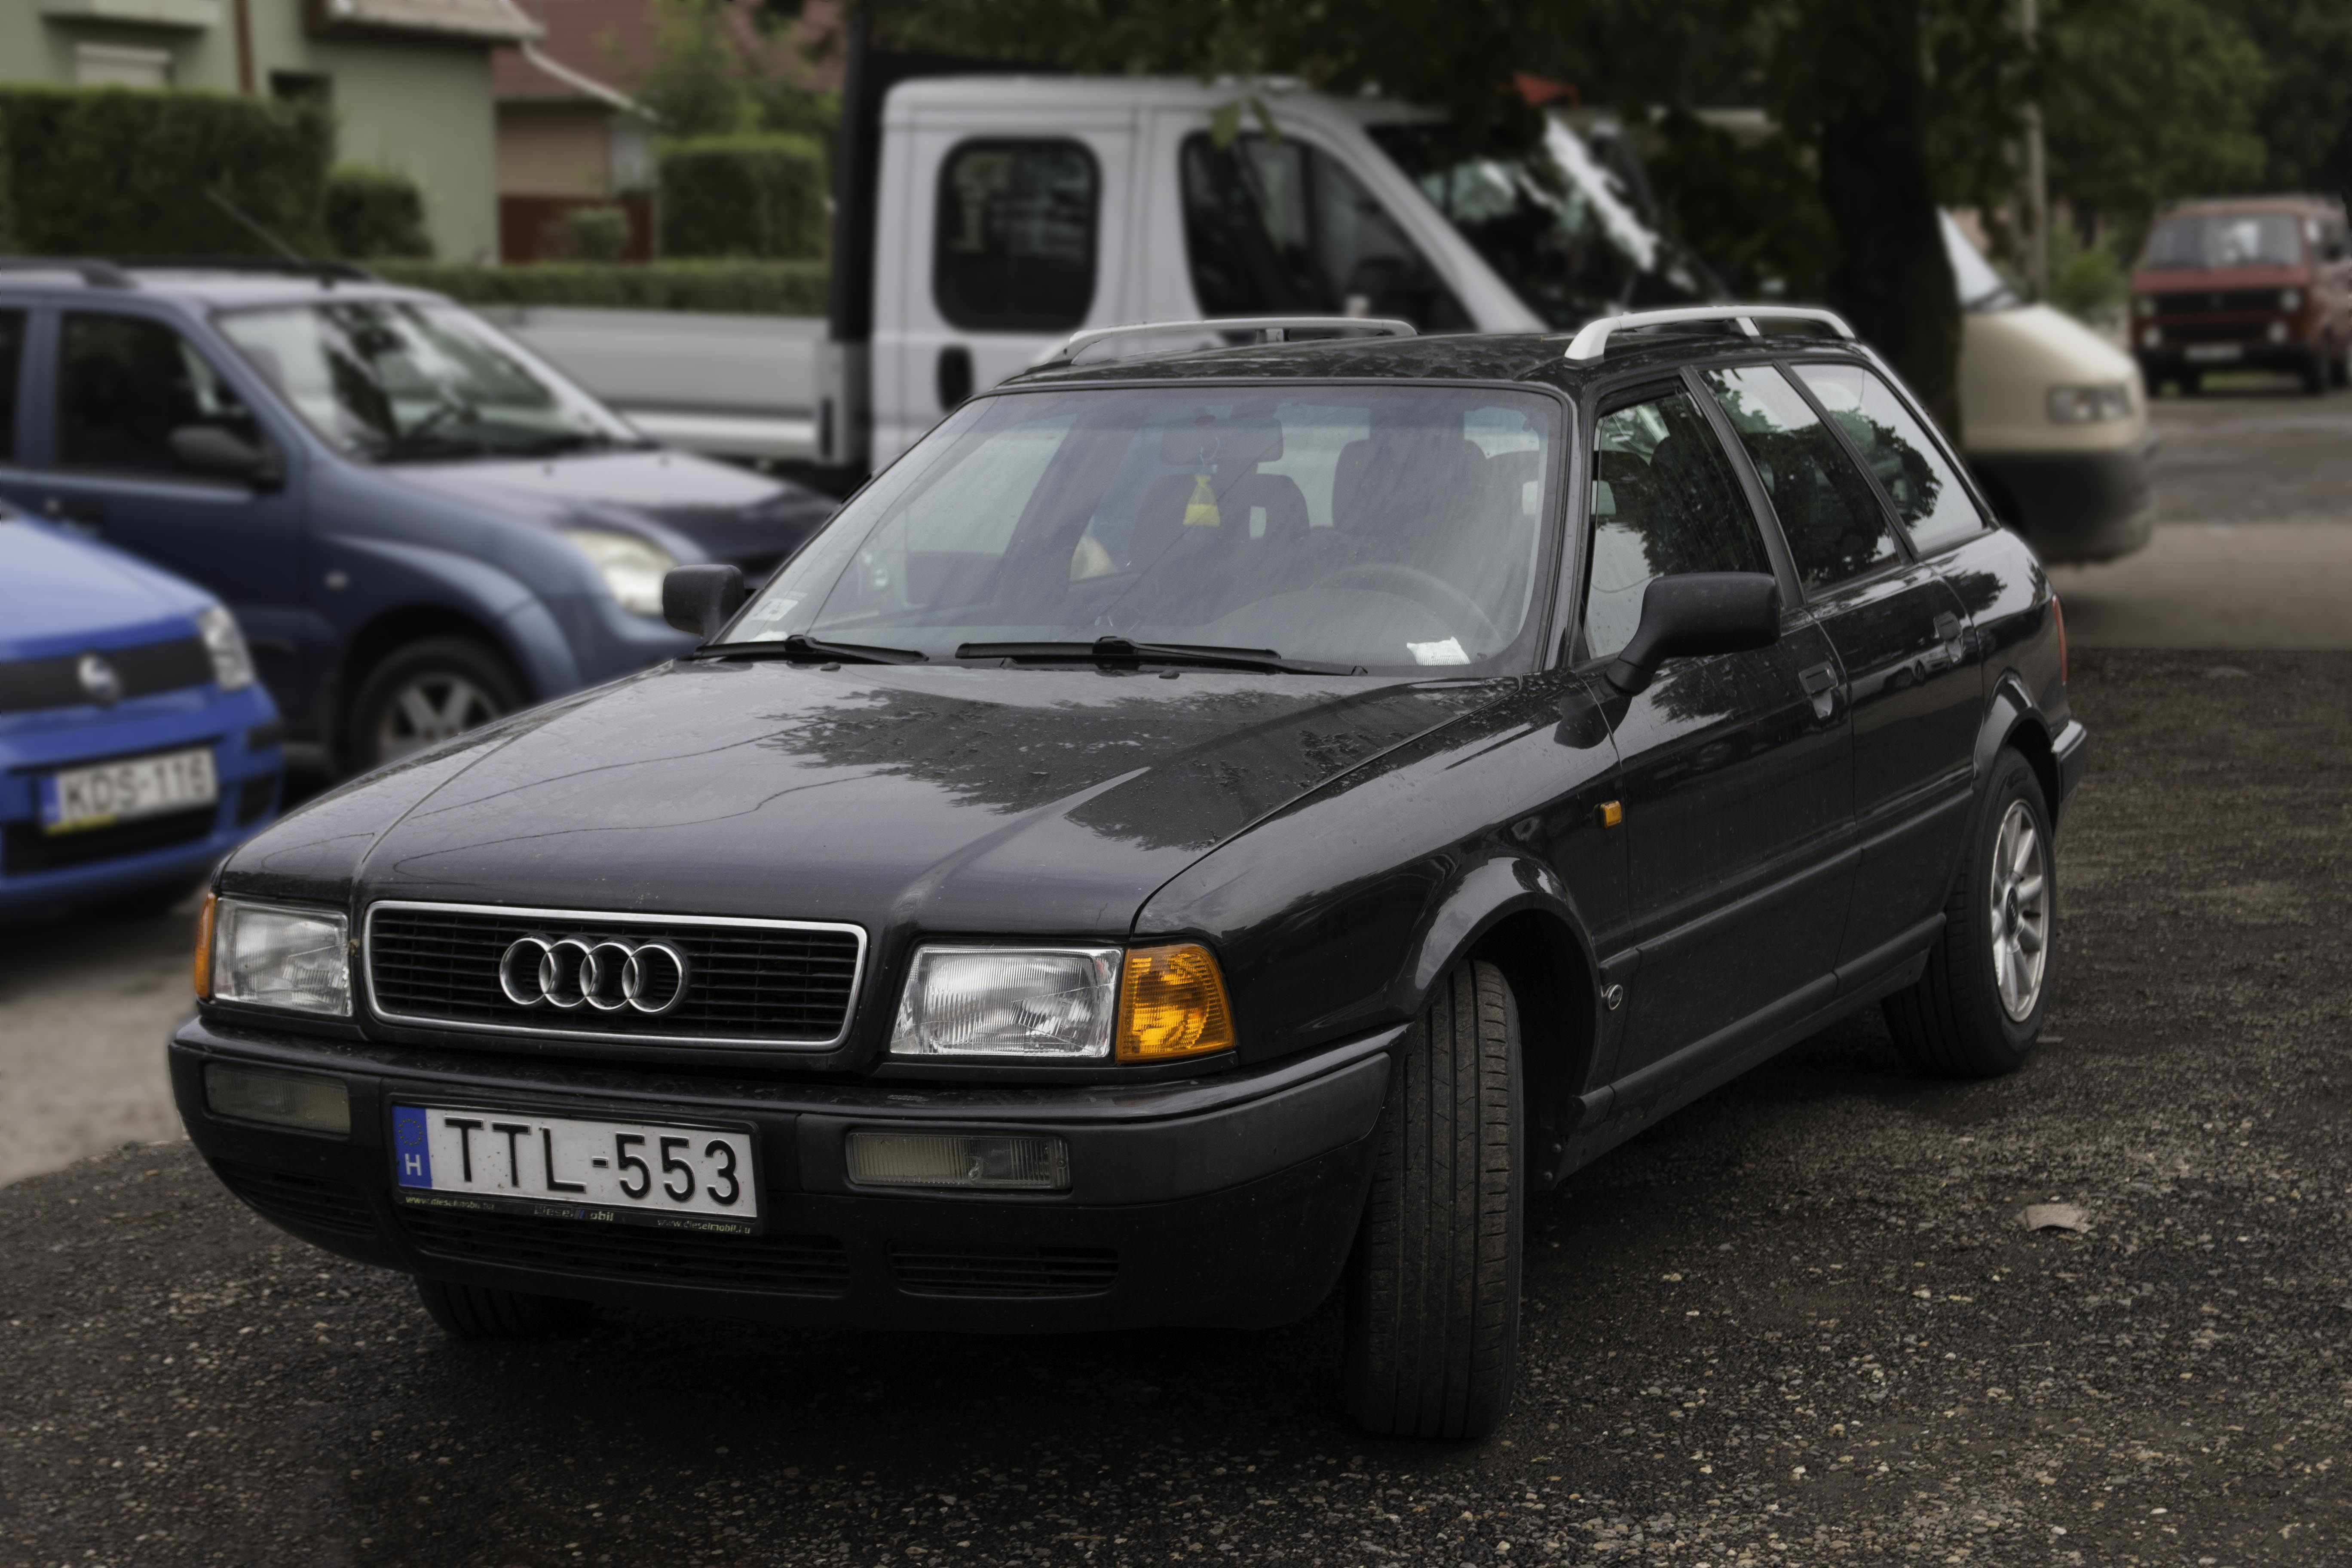 Fileaudi 80 B4 Avant Jmjpg Wikimedia Commons